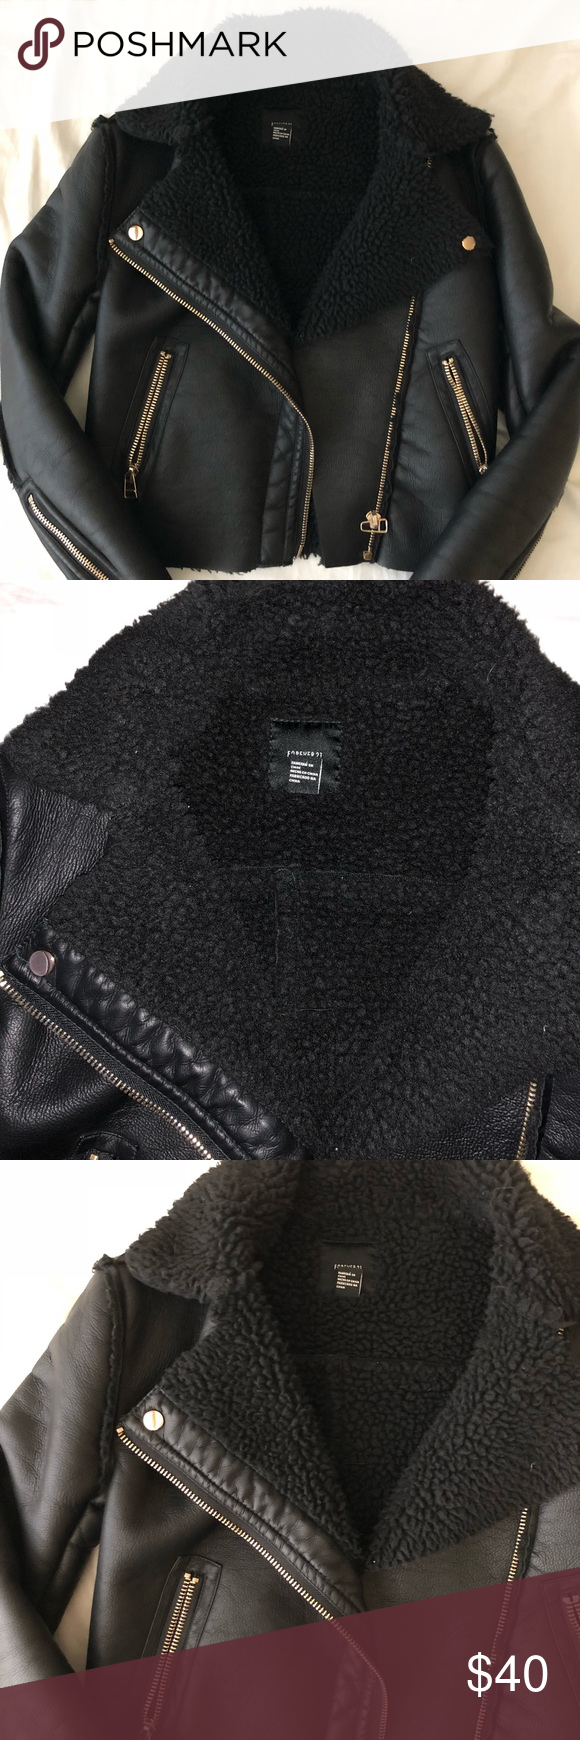 Forever 21 shearling faux leather jacket (With images